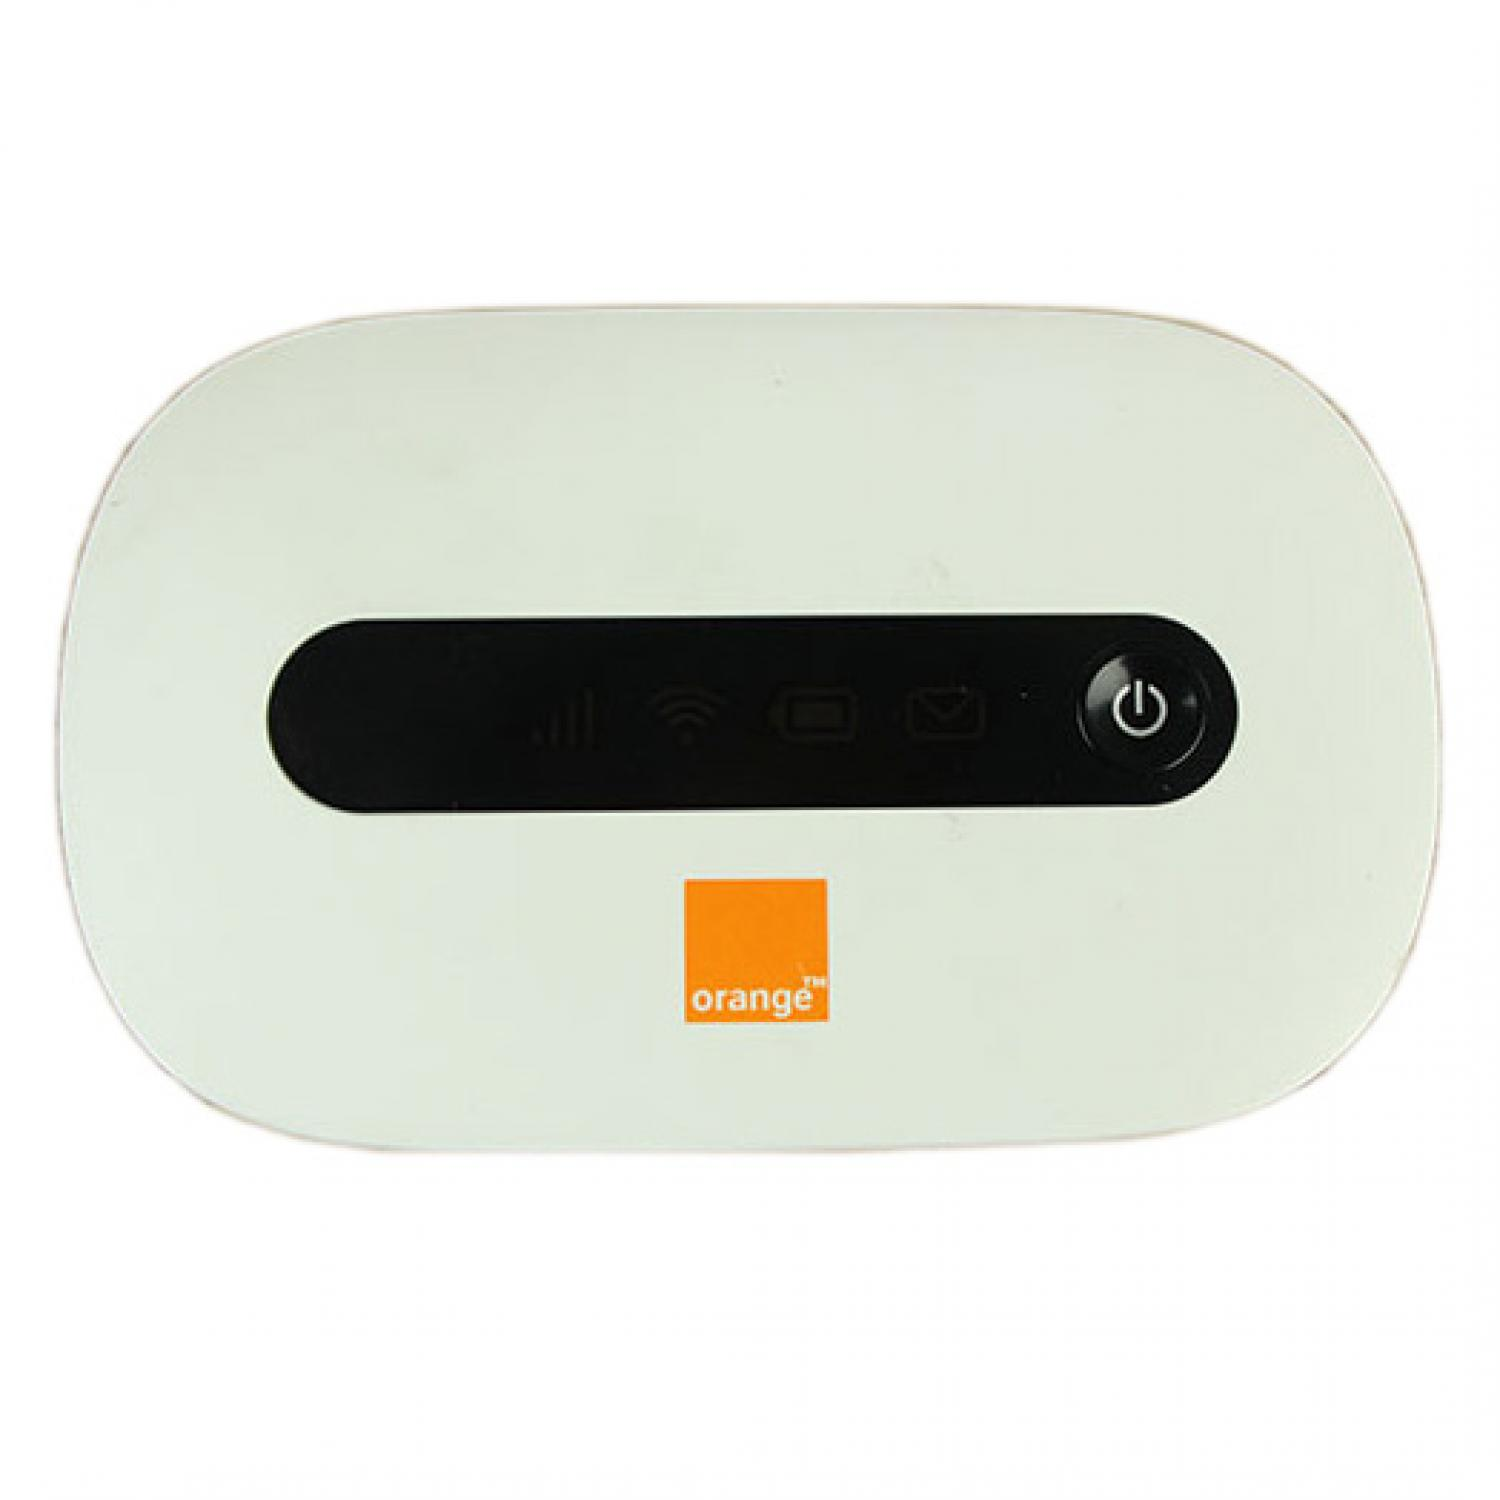 Huawei E5220s-2 Hotspot HSPA+ 21Mbps Orange Logo 14 DAYS No Box